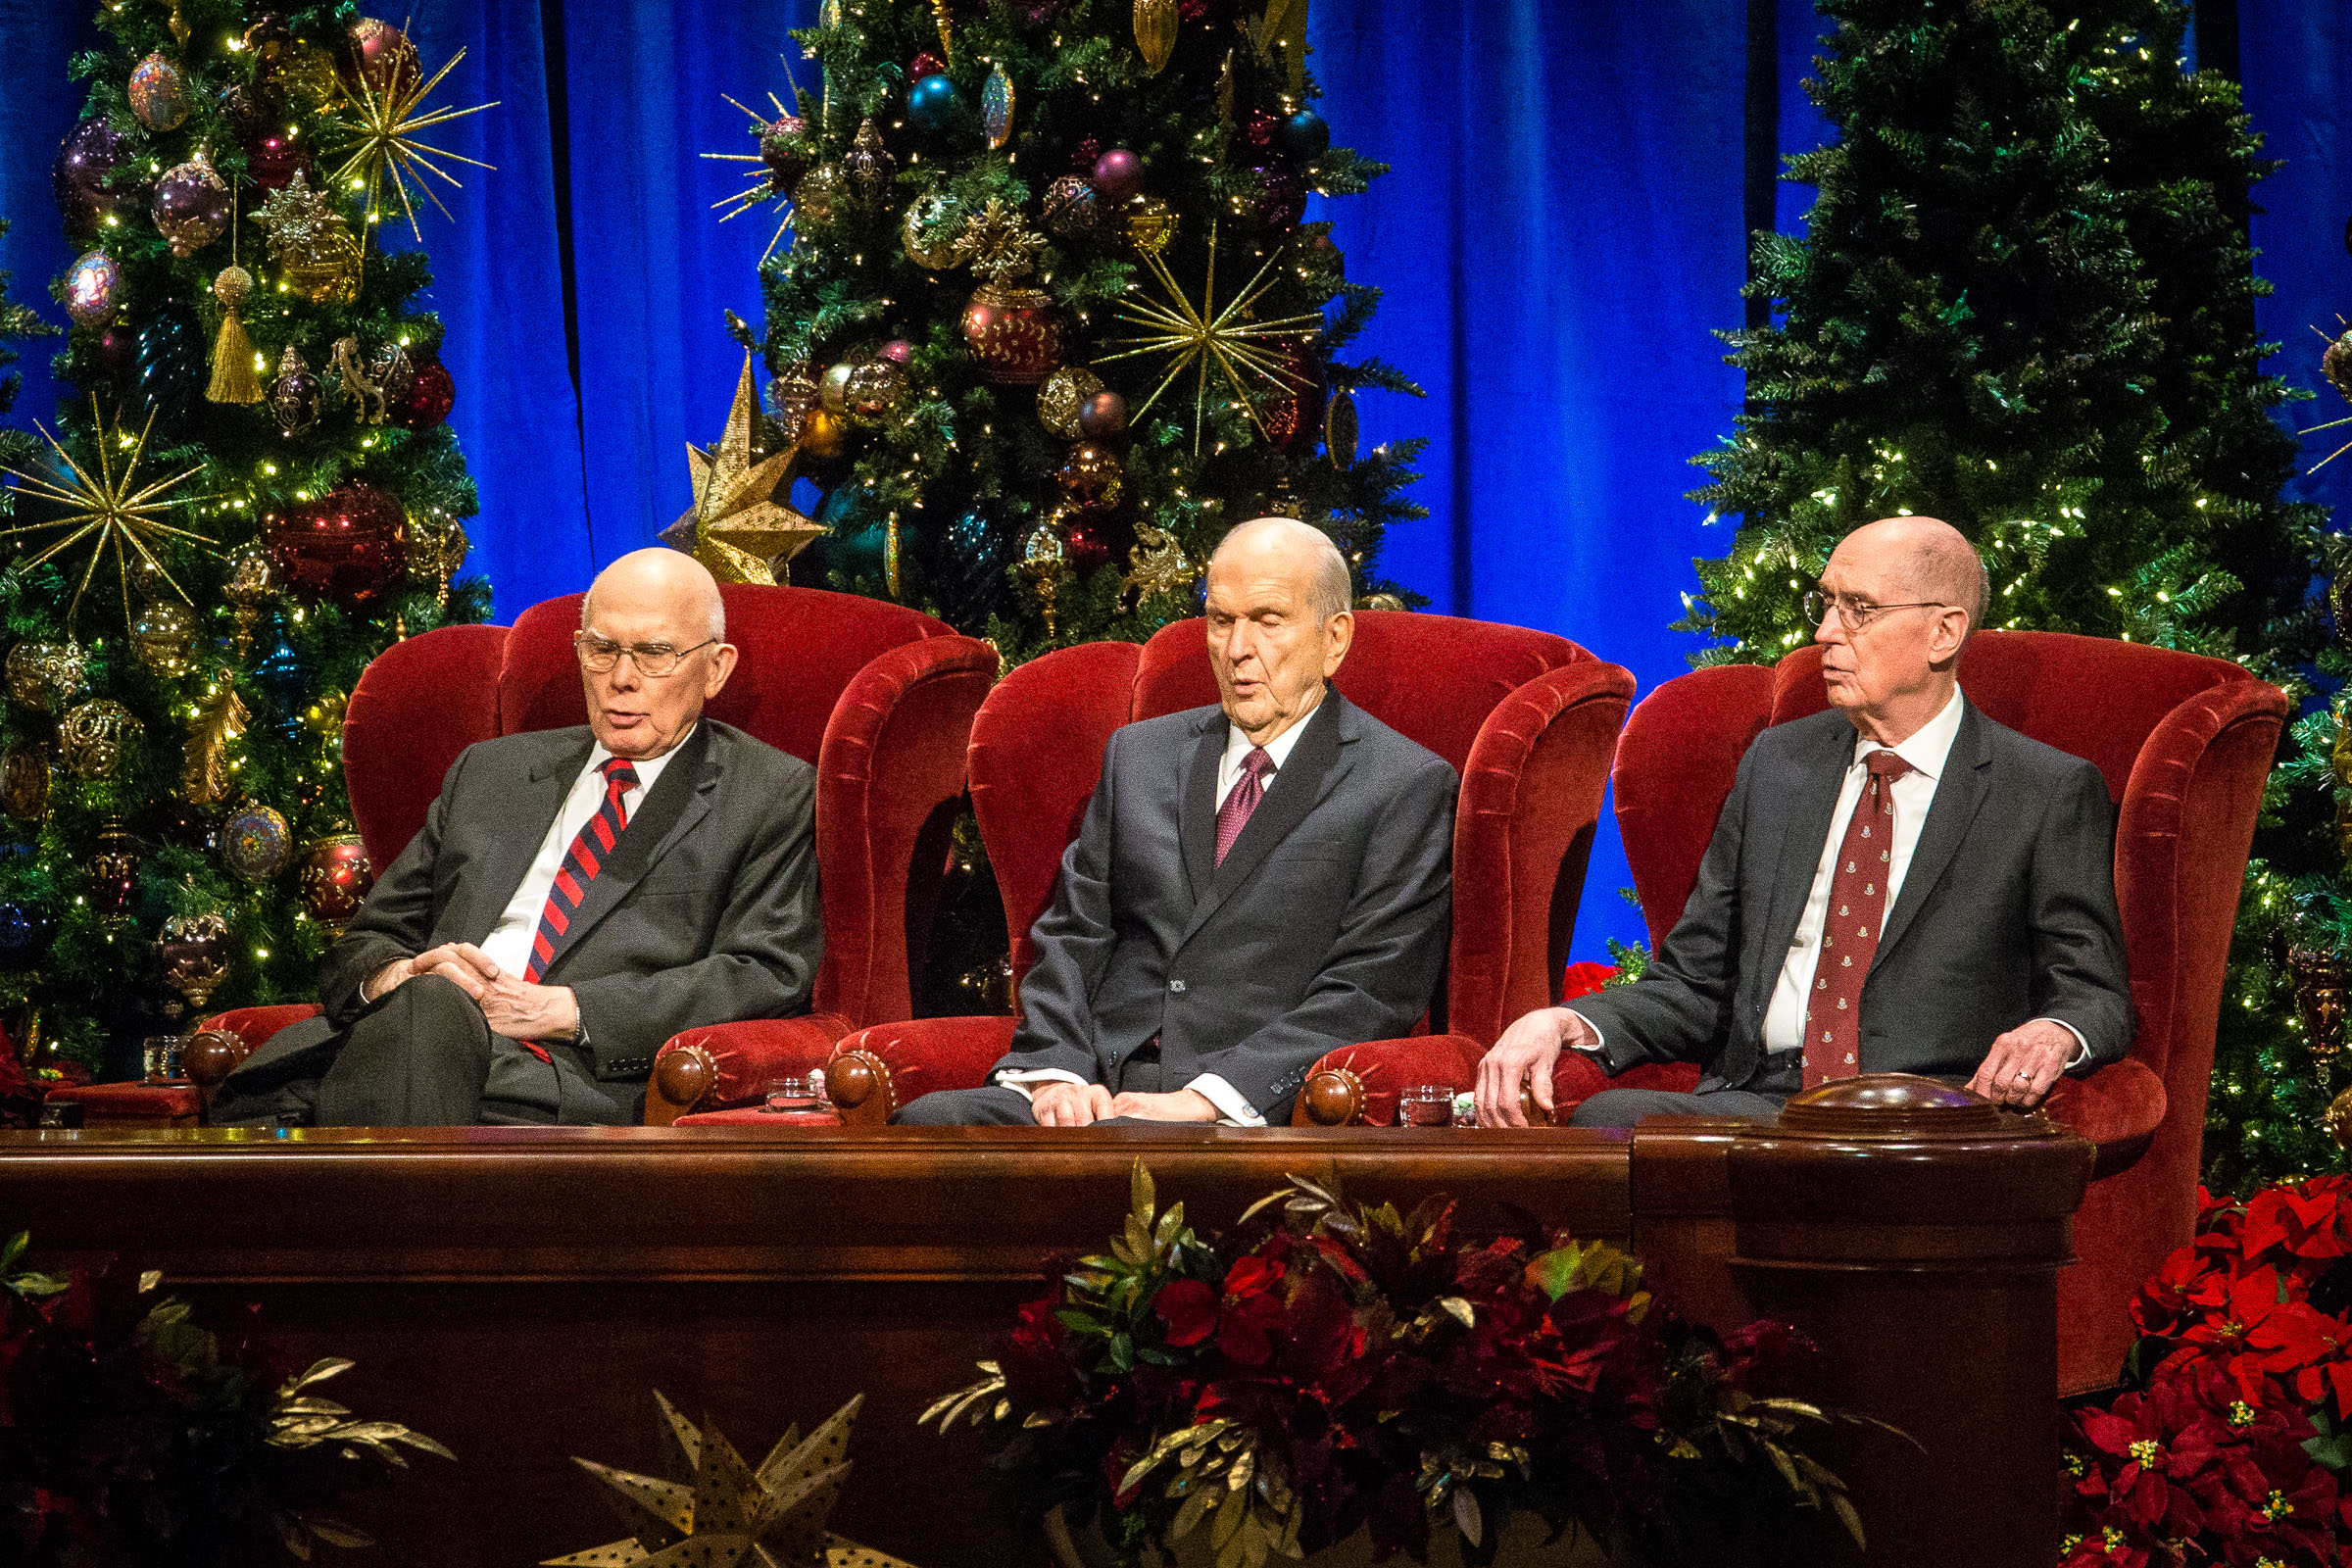 President Dallin H. Oaks, first counselor in the First Presidency, left, President Russell M. Nelson, and President Henry B. Eyring, second counselor in the First Presidency, sing along with the Tabernacle Choir during the First Presidency's Christmas Devotional in the Conference Center in Salt Lake City on Sunday, Dec. 2, 2018.